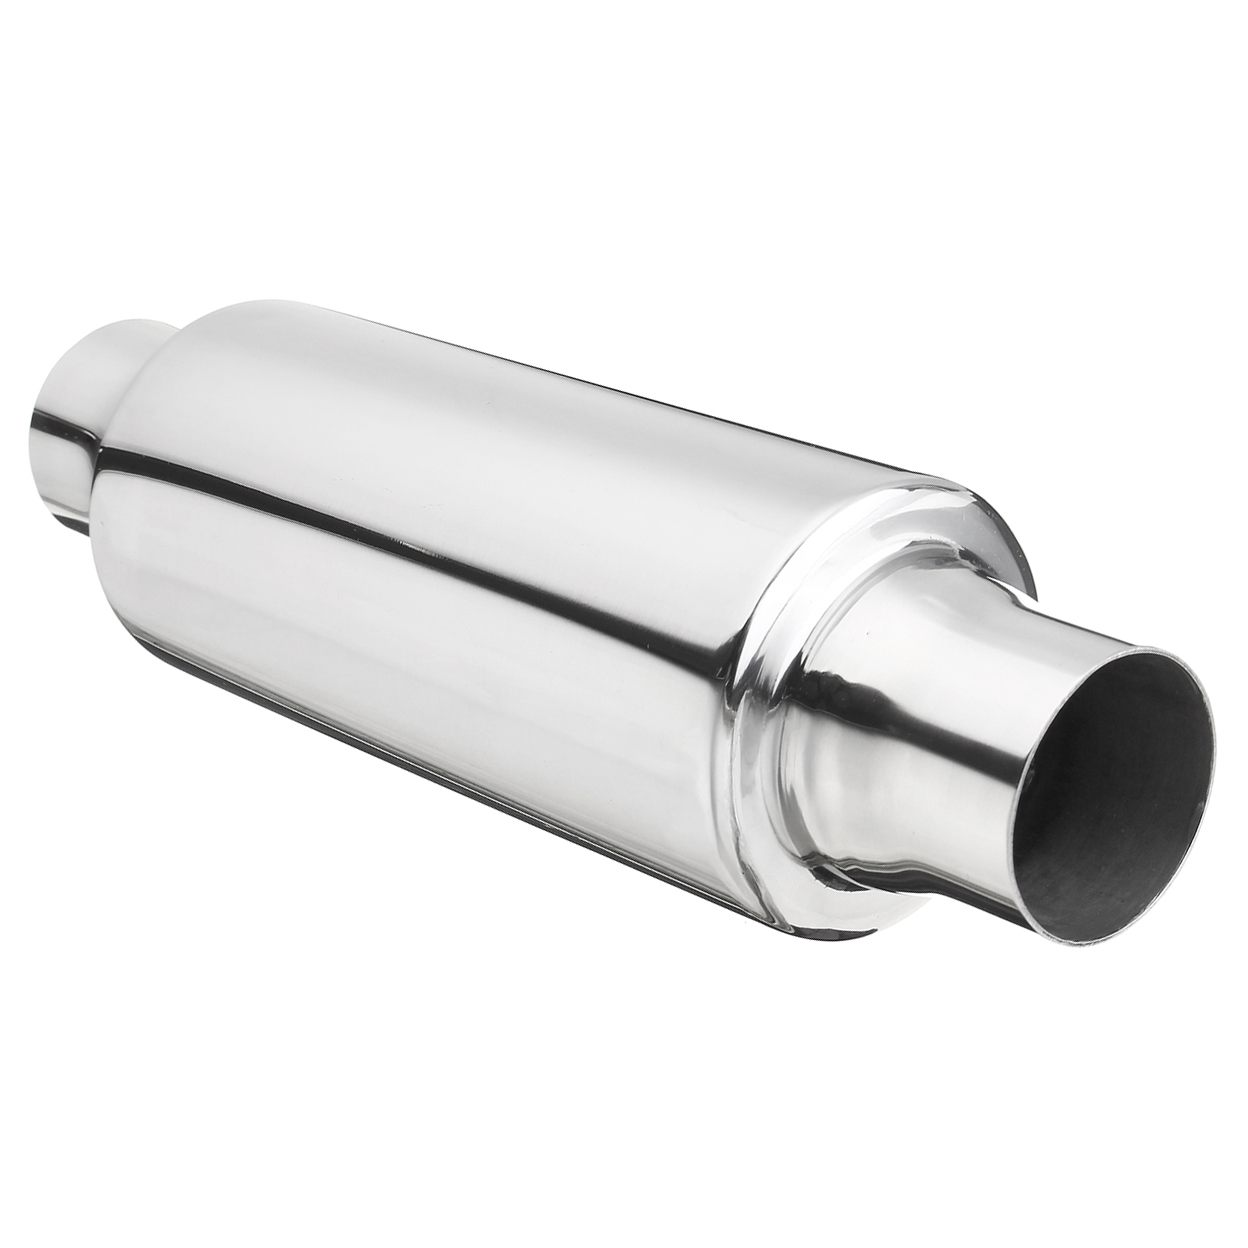 Bullet Bomb Silencer with 76mm Round Tailpipe Stainless Steel Exhaust Back Box